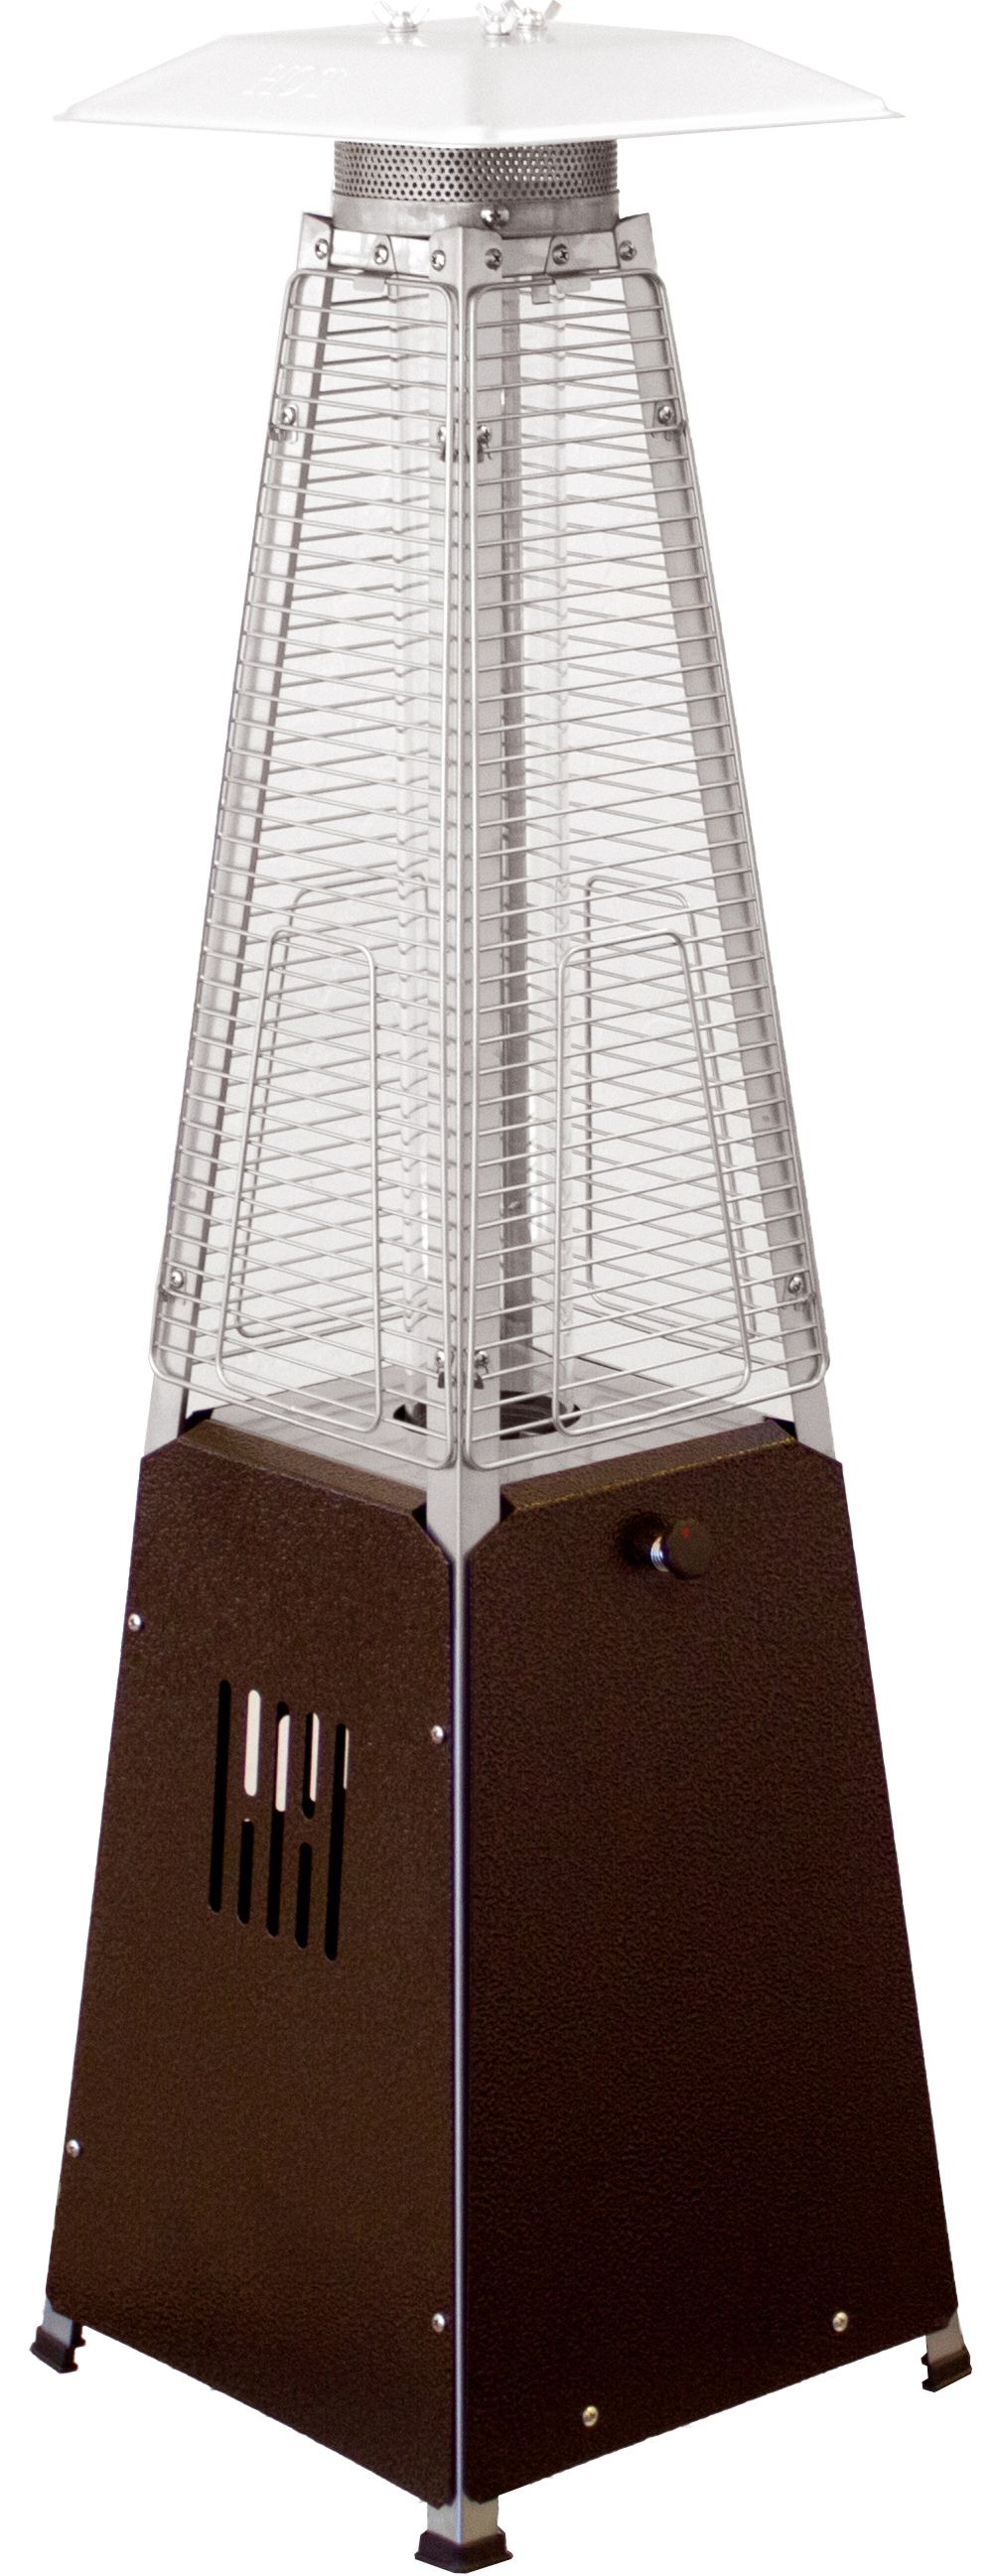 Arizona Patio Heaters Table Top Patio Heater In Bronze With Glass Tube  HLDS032 GTTHG